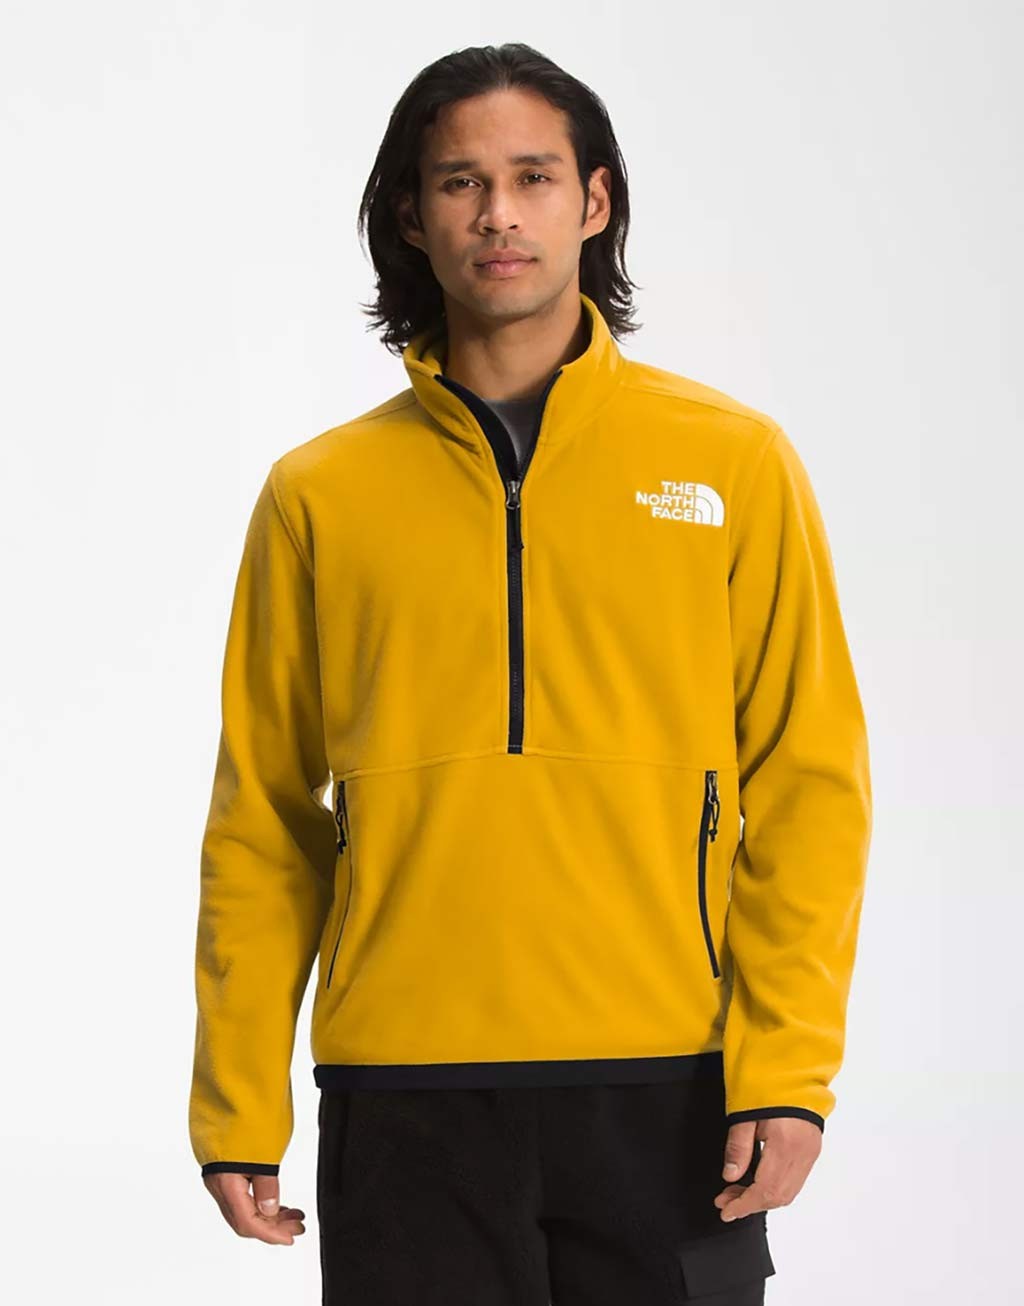 The Best North Face Jackets 9